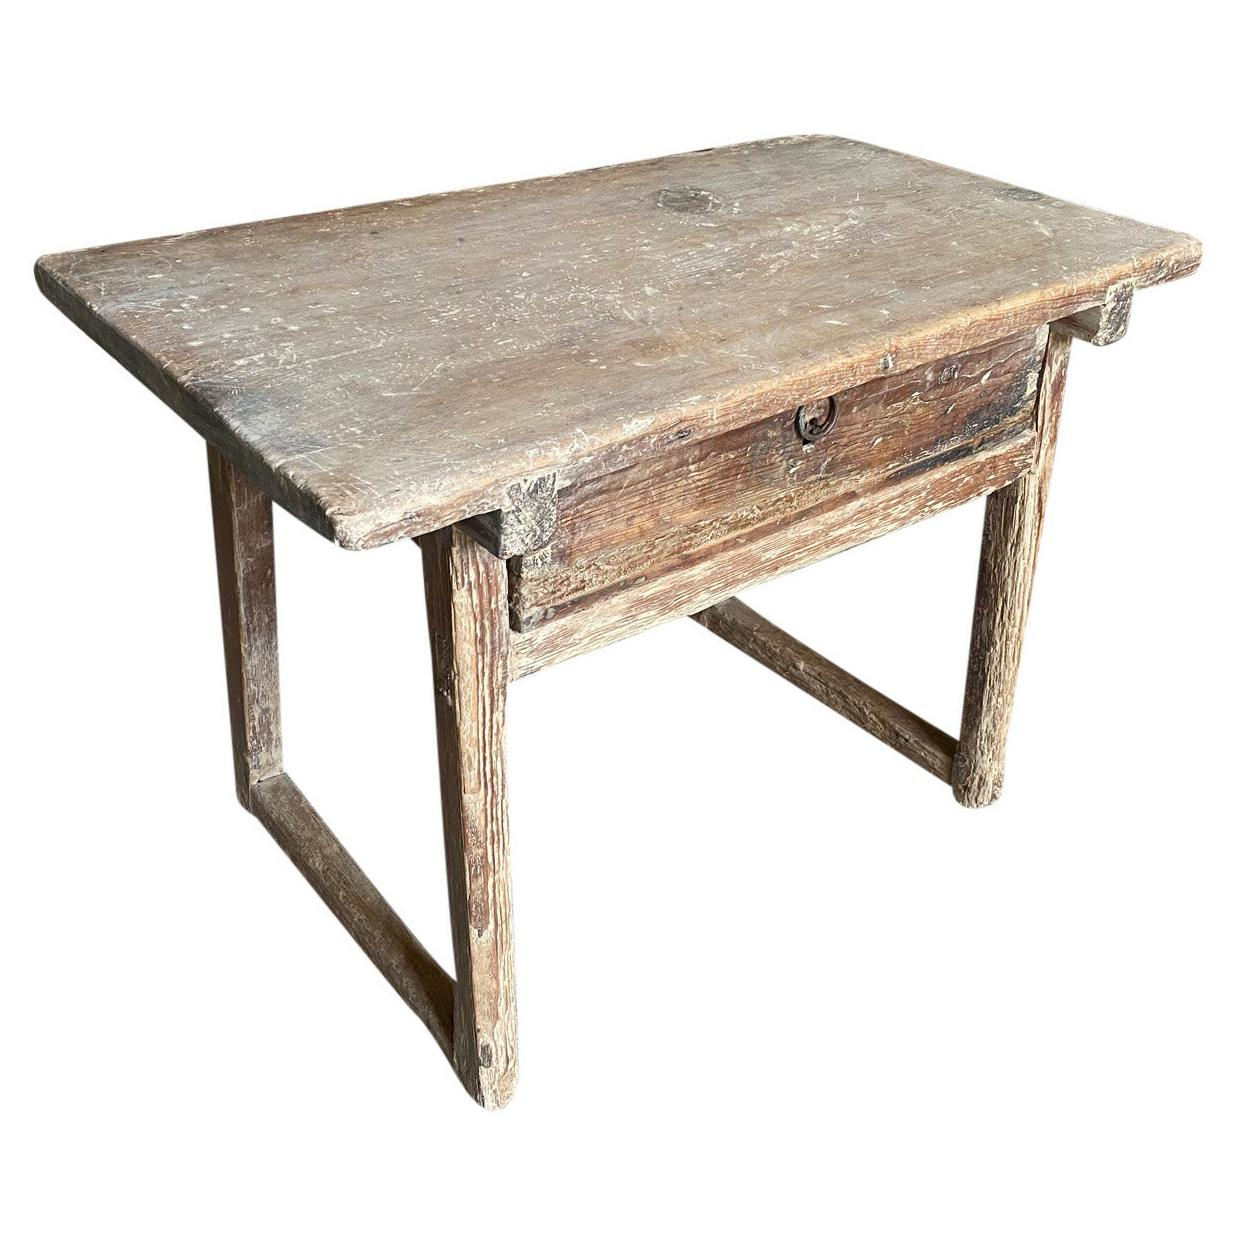 Spanish 18th Century Rustic Side Table